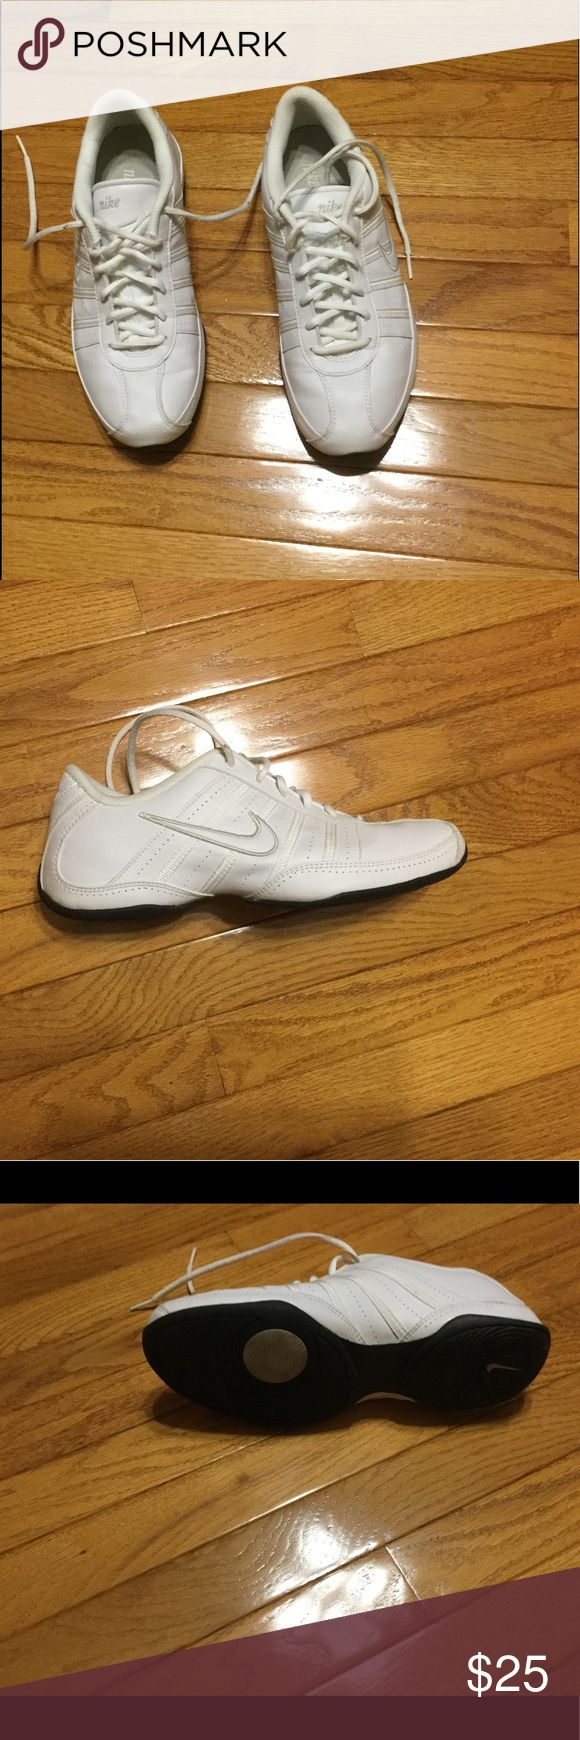 25 best ideas about white tennis shoes on